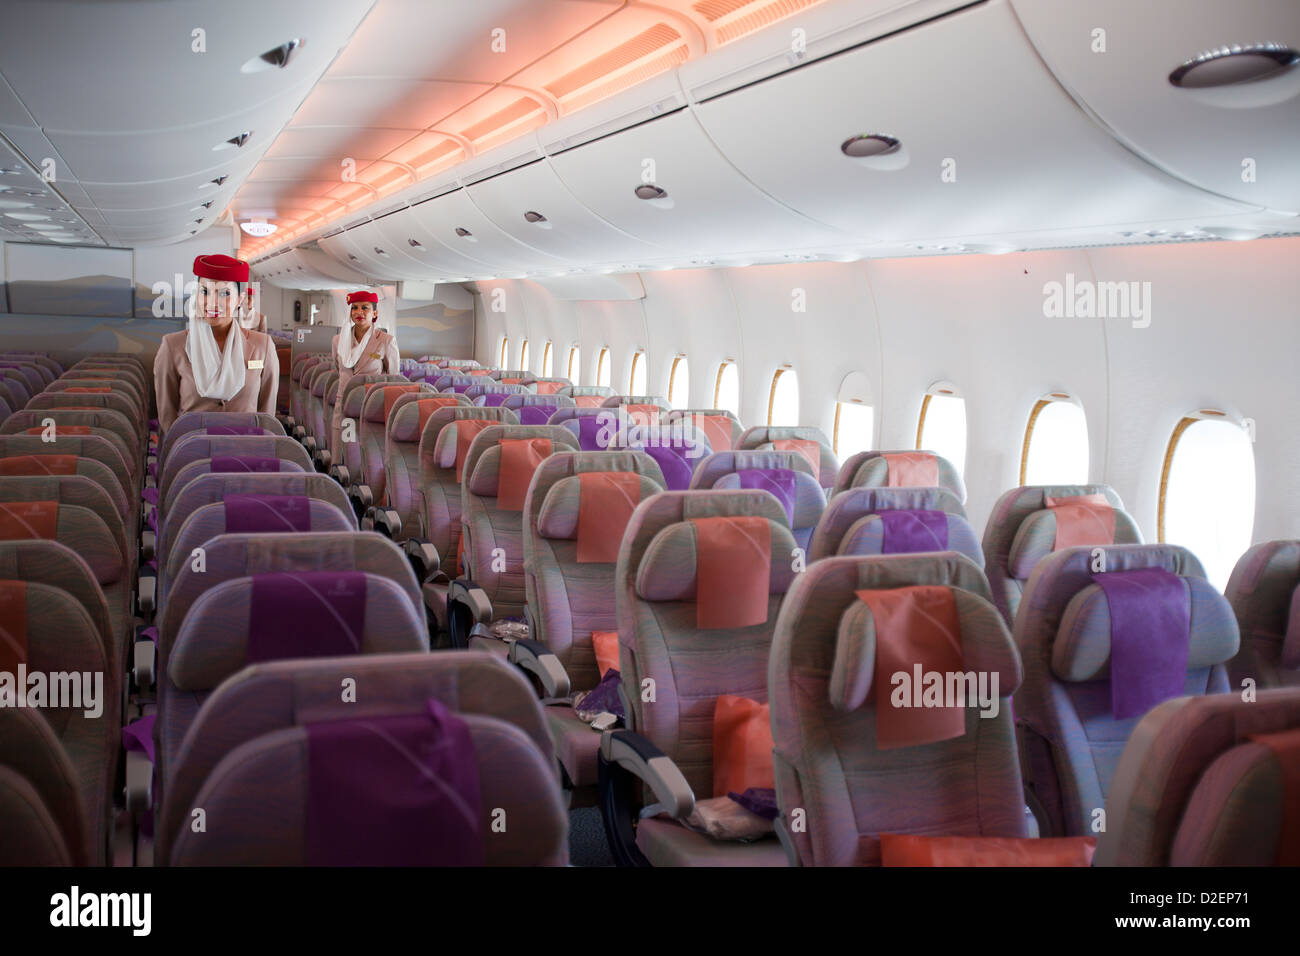 Airbus a380 emirates airways standard class economy seats for Airbus a380 emirates interior